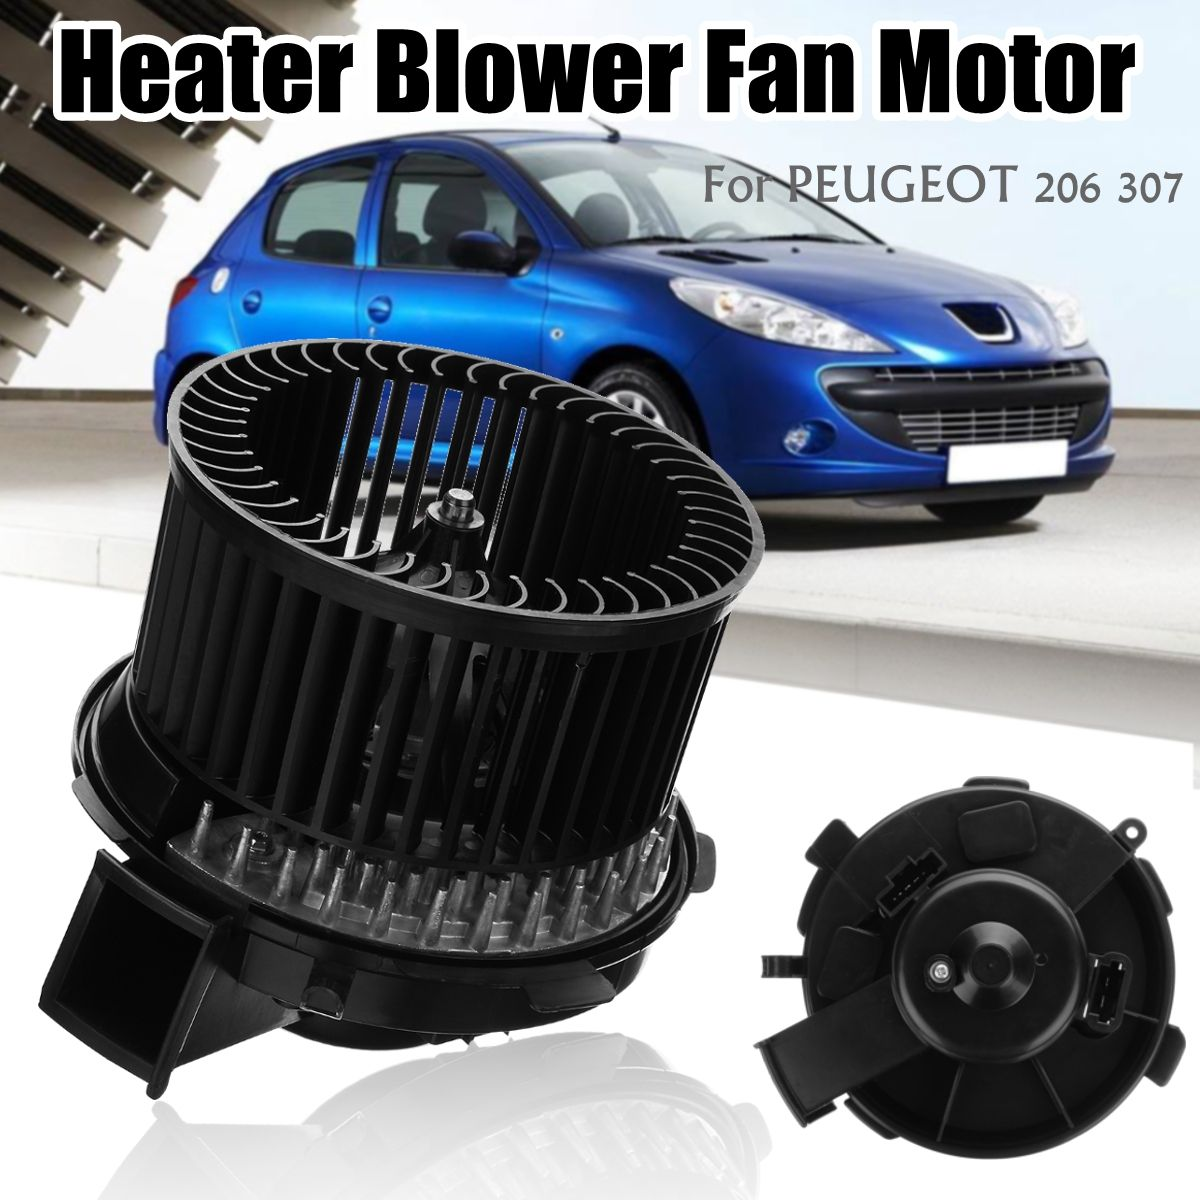 6441K0 12V Car Heater Blower Fan Motor With AIR-CON for Peugeot 206 CC/SW 307 CC/SW